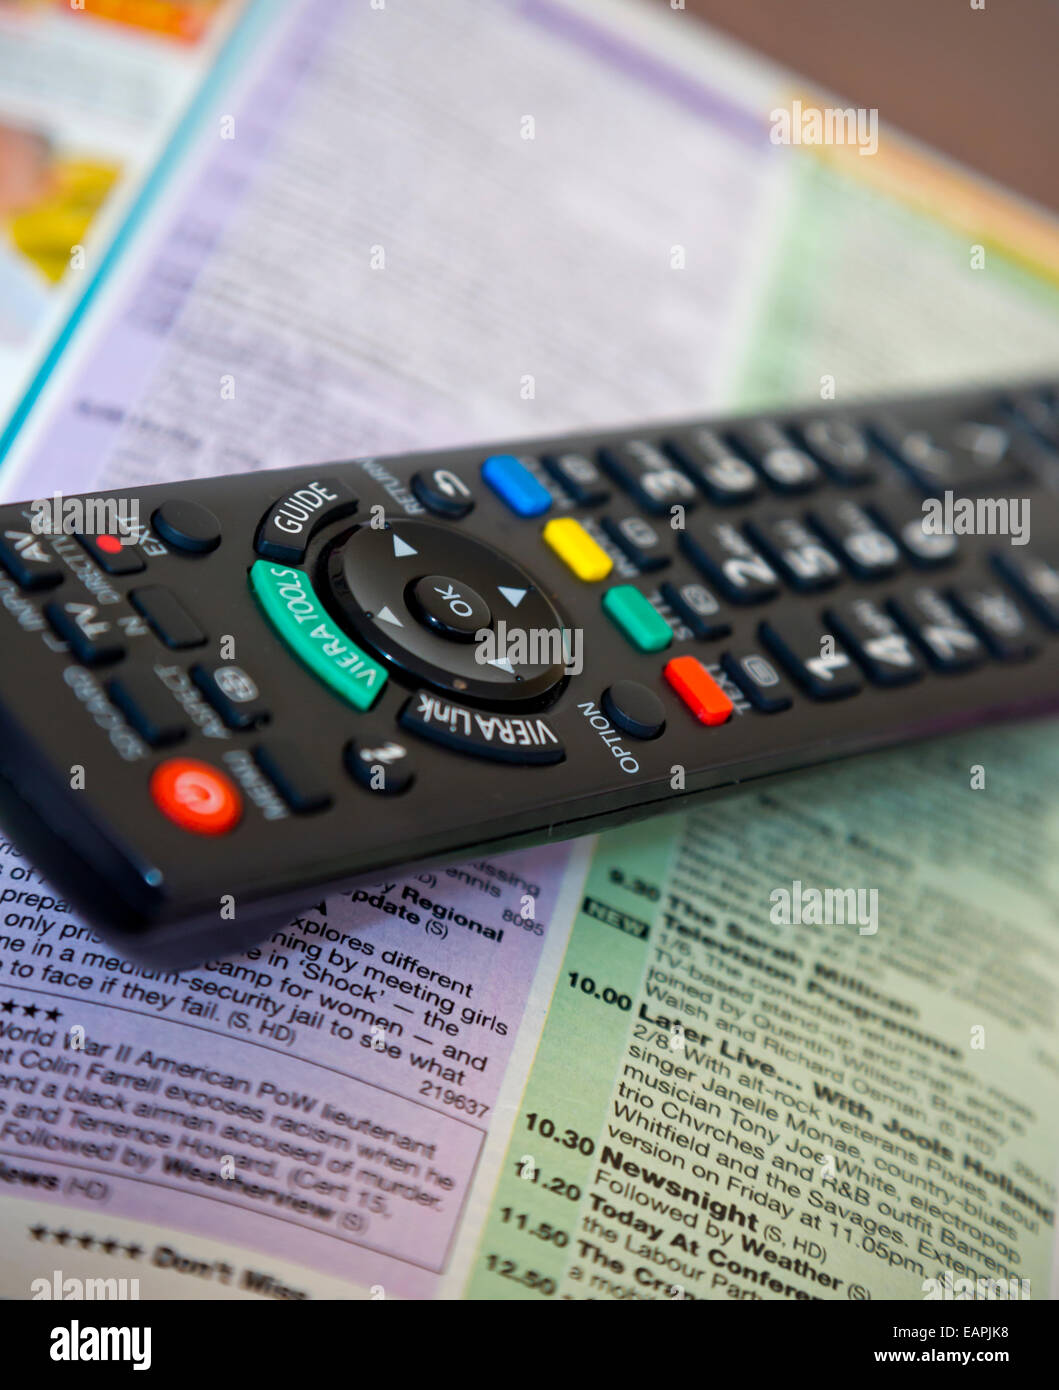 Television remote control handset resting on a tv listings guide - Stock Image